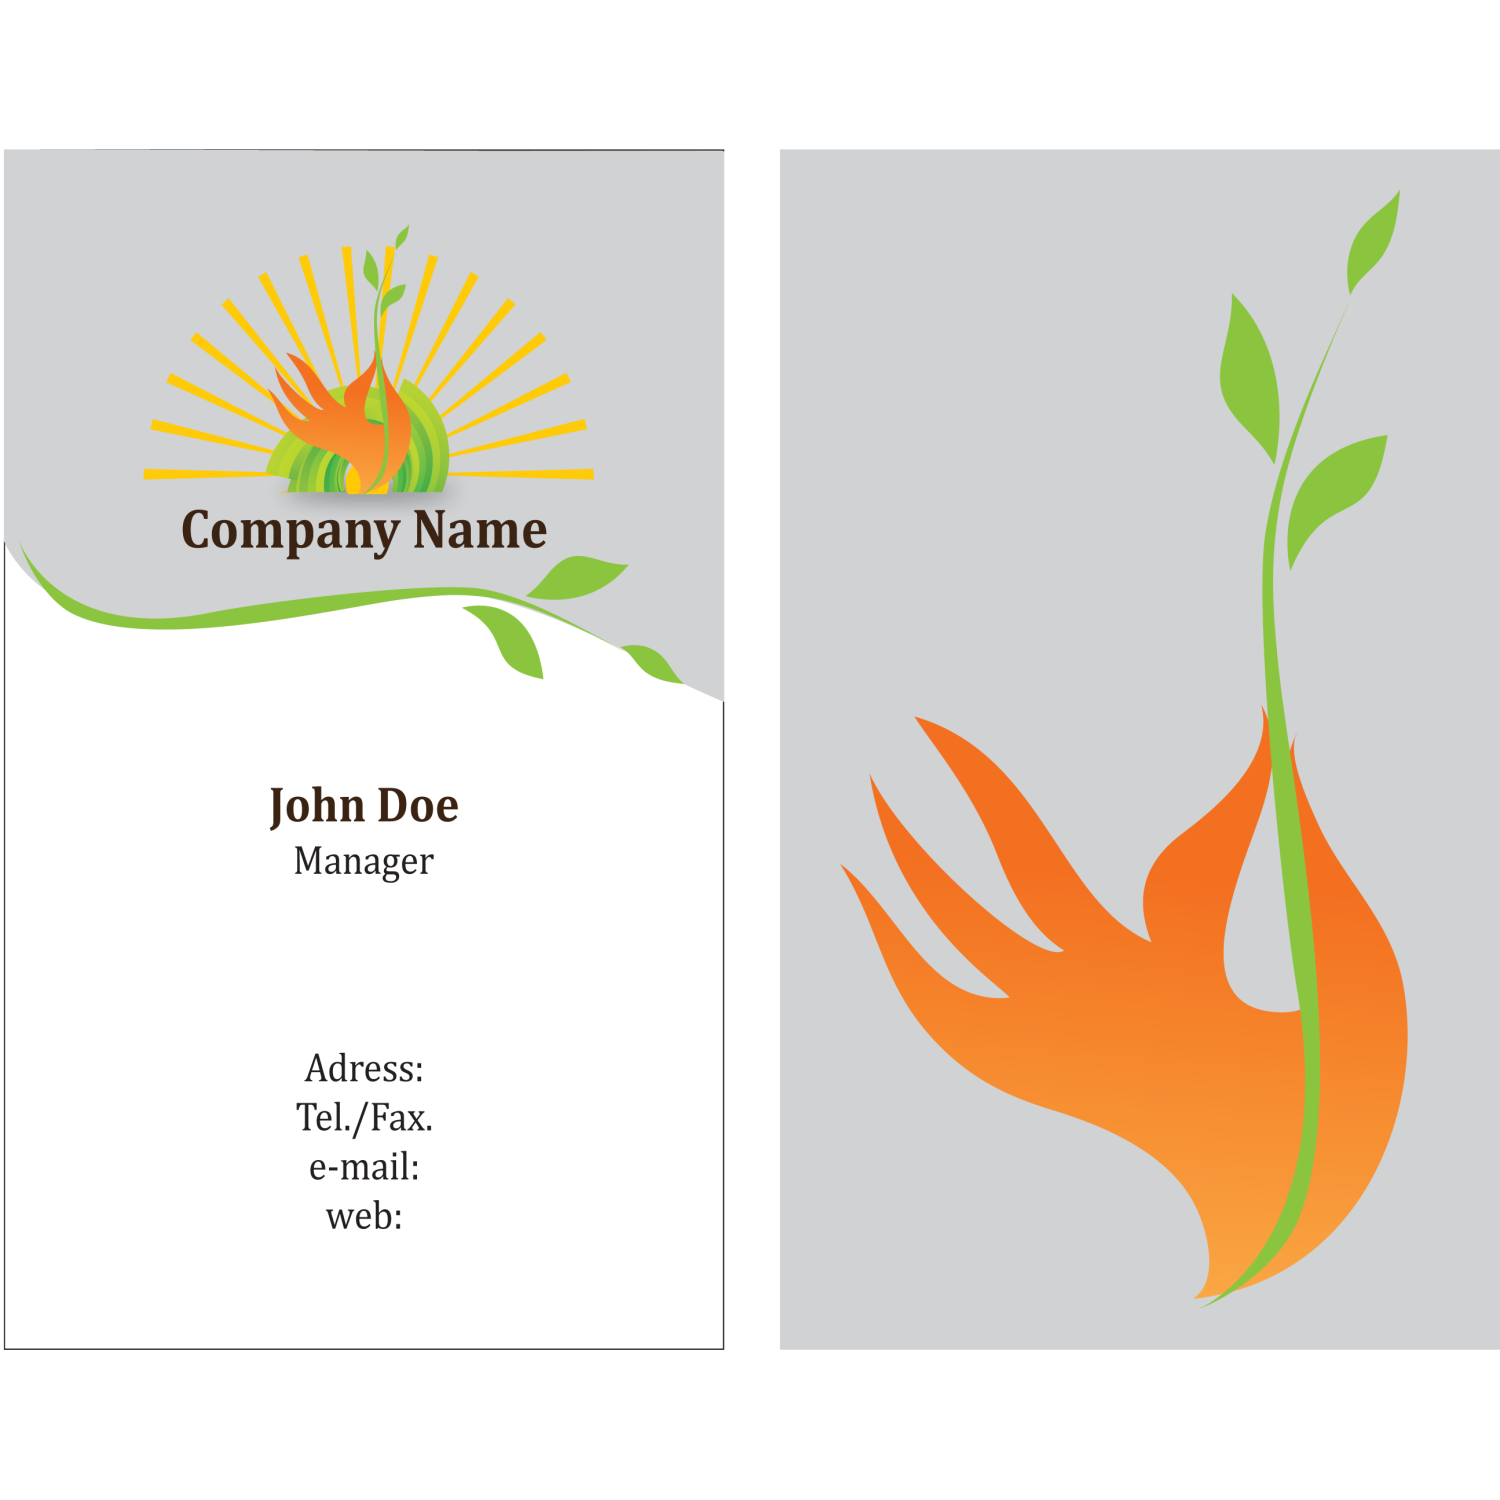 Vector for free use: Eco Friendly Business Card Template